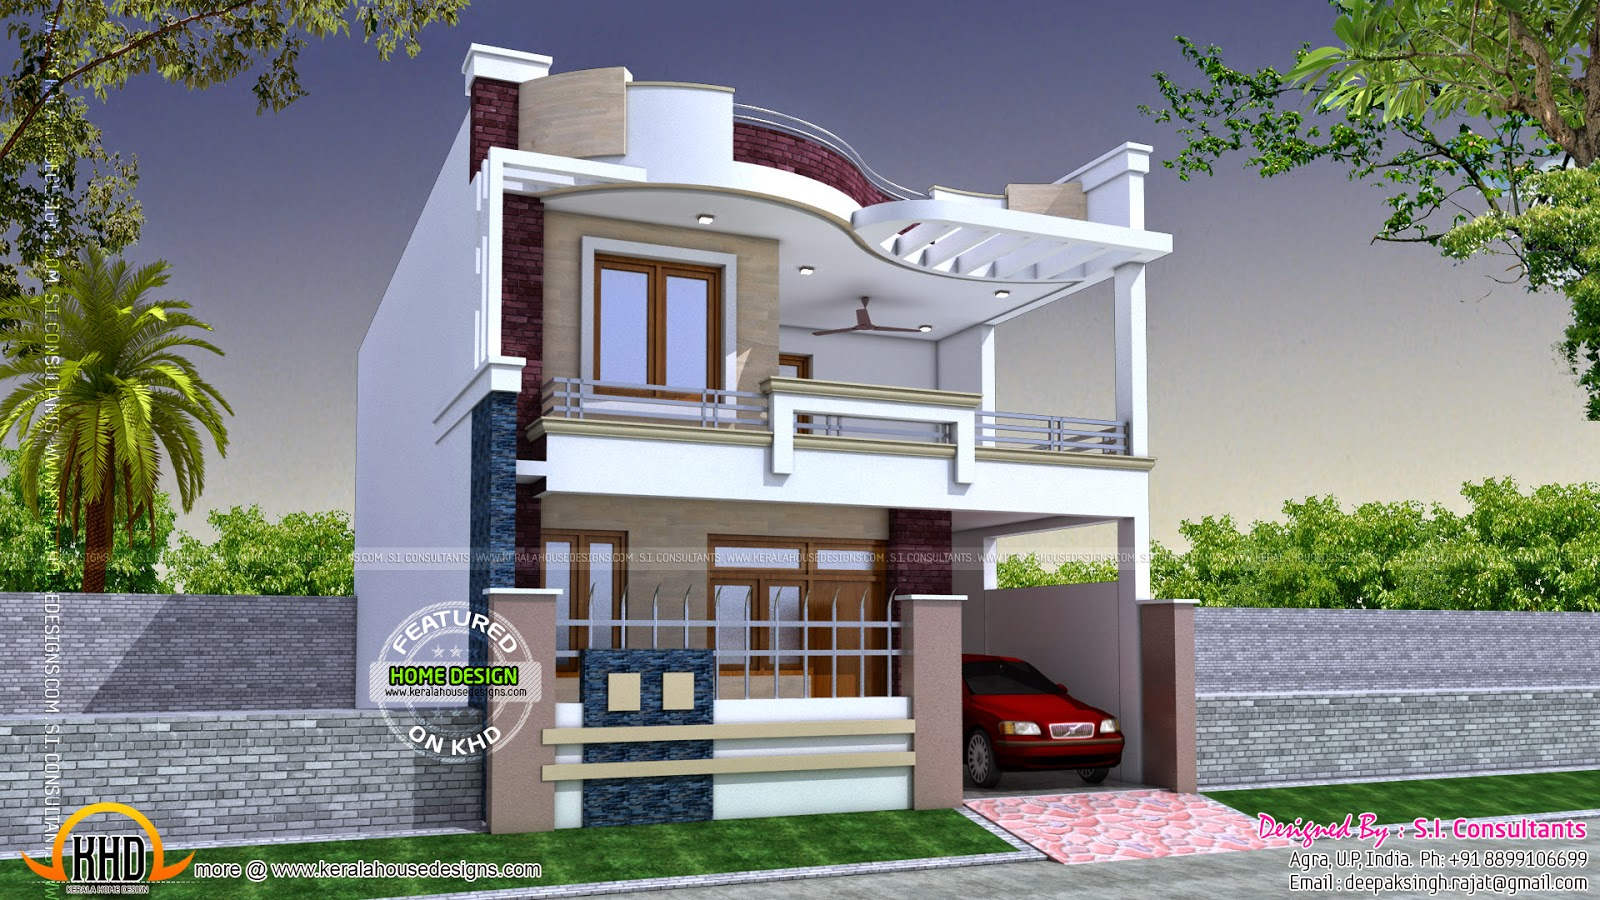 Small house architecture design in india minimalist home for Architecture design for house in india